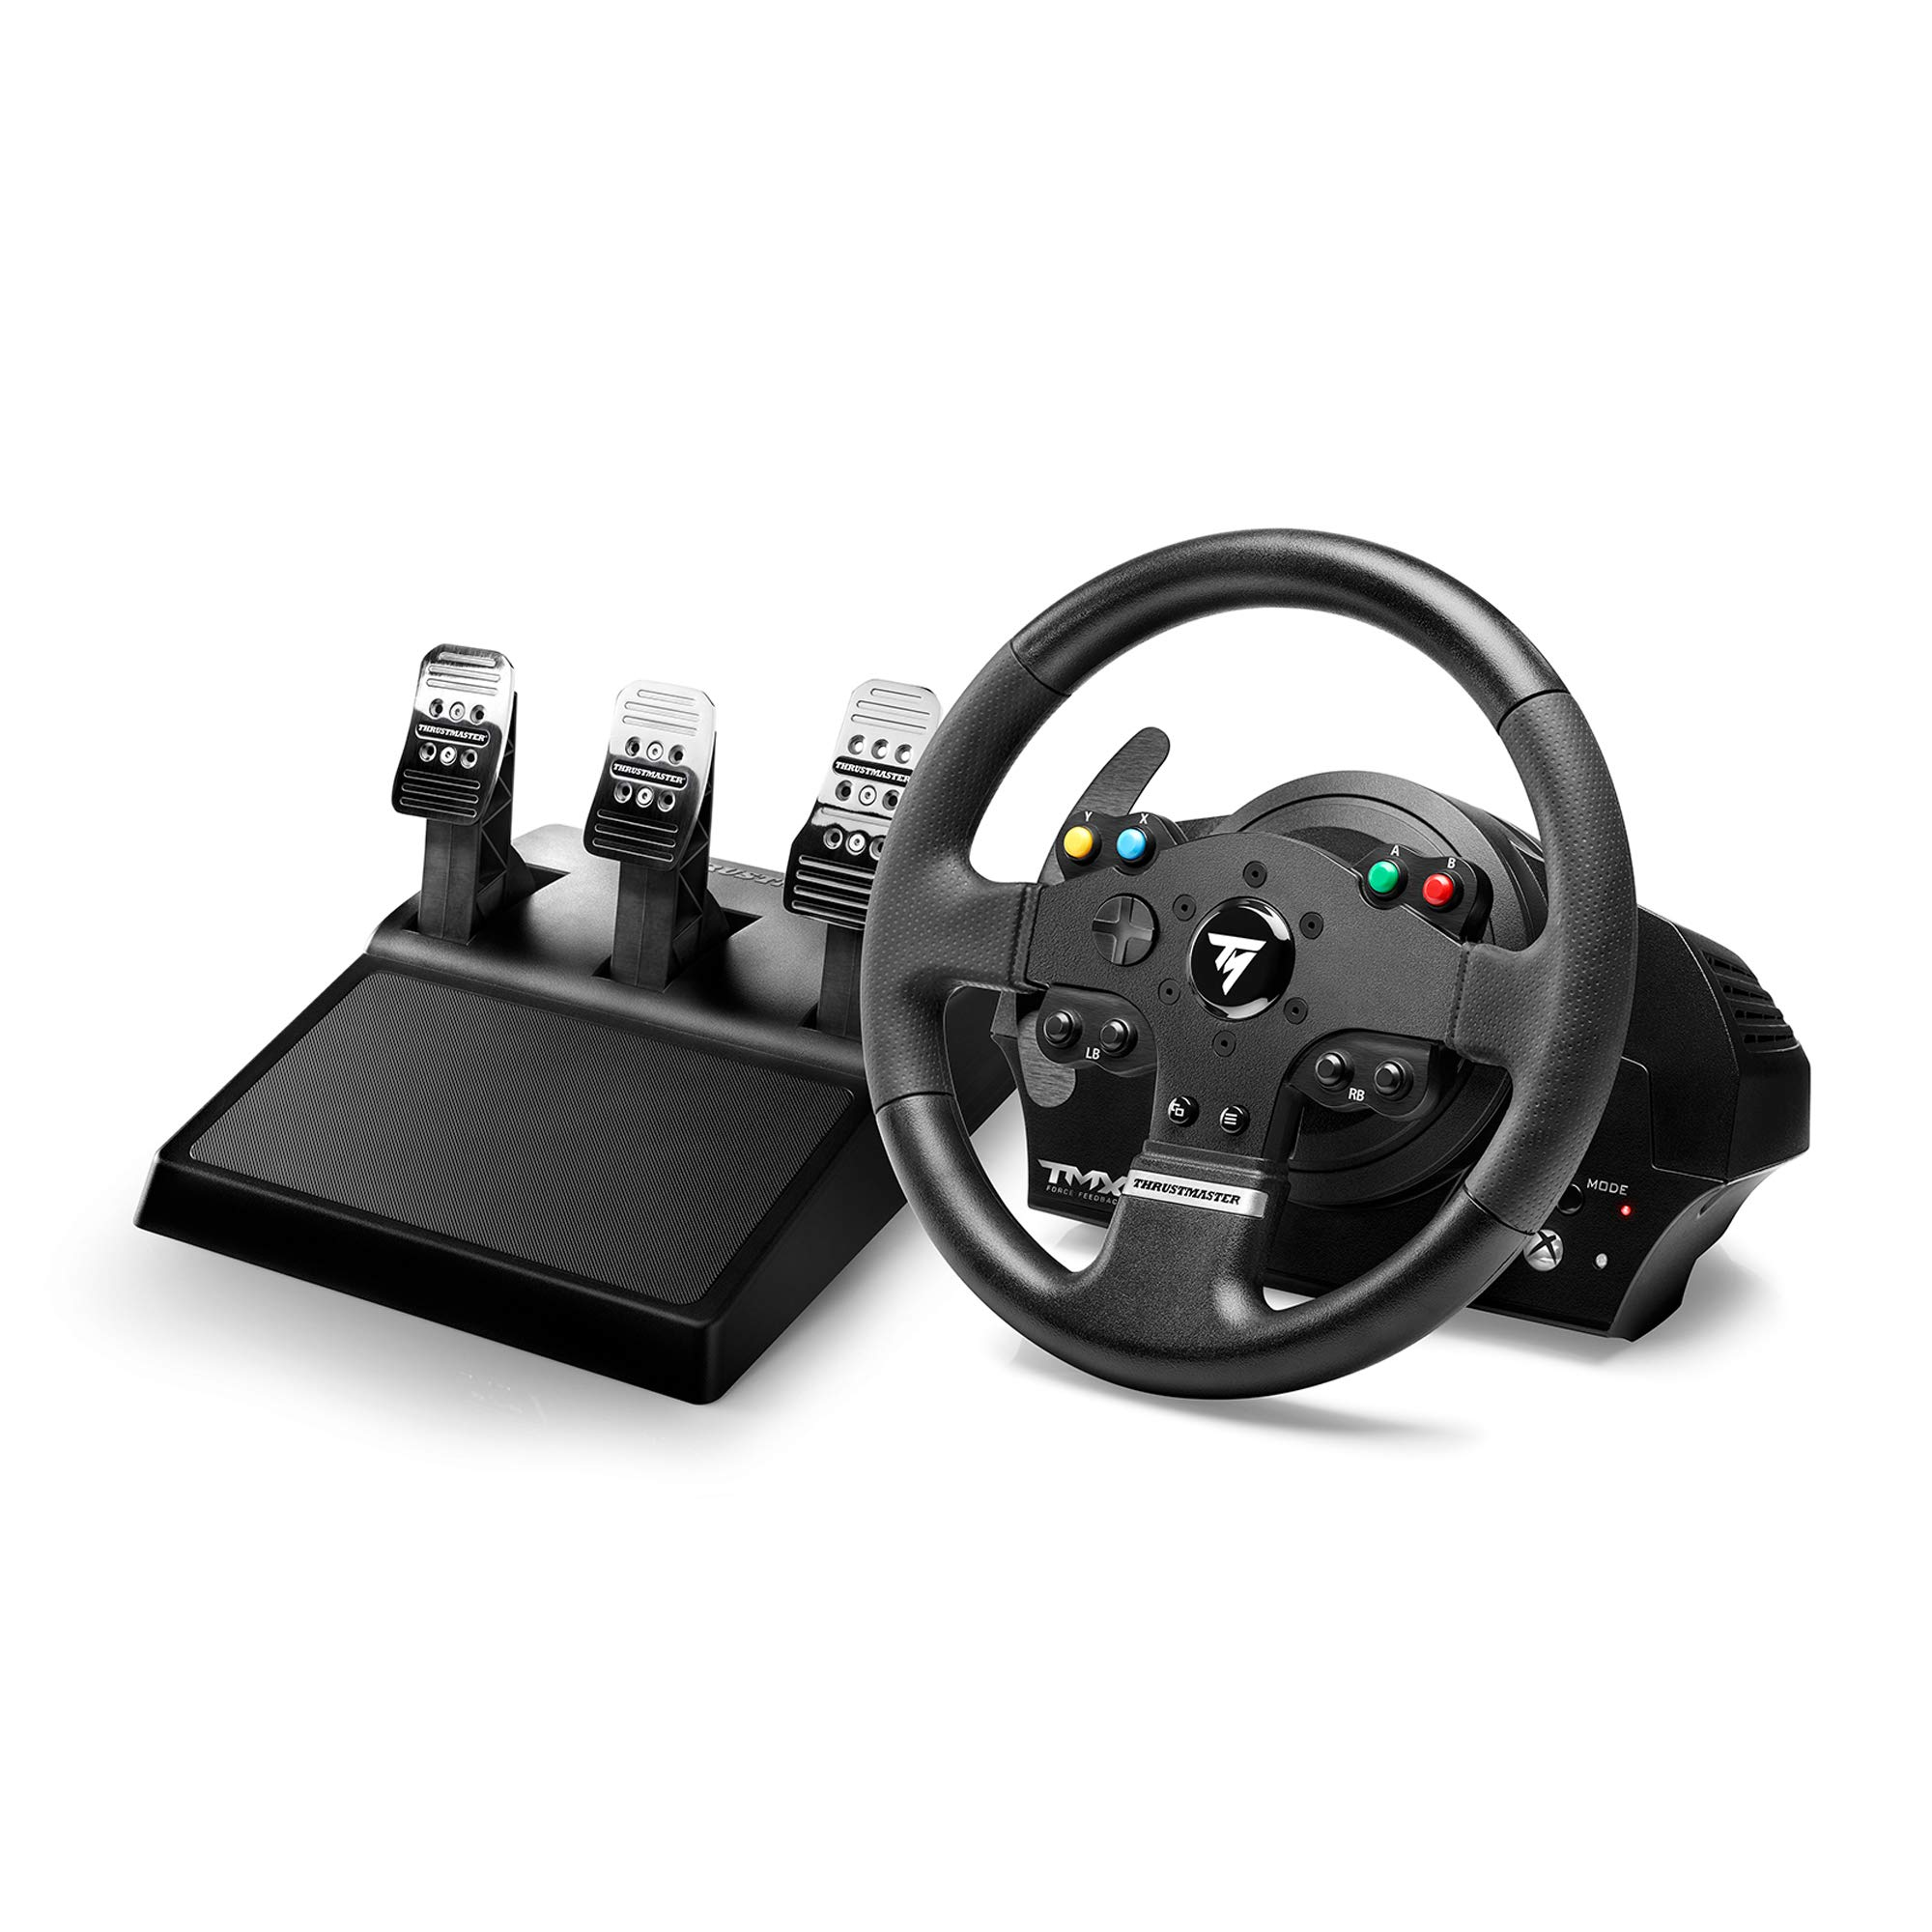 Thrustmaster TMX PRO: Ergonomic racing wheel featuring 3-pedal set with metal pedal heads - Compatible with Xbox One and PC, Works on Xbox Series X|S - UK Version